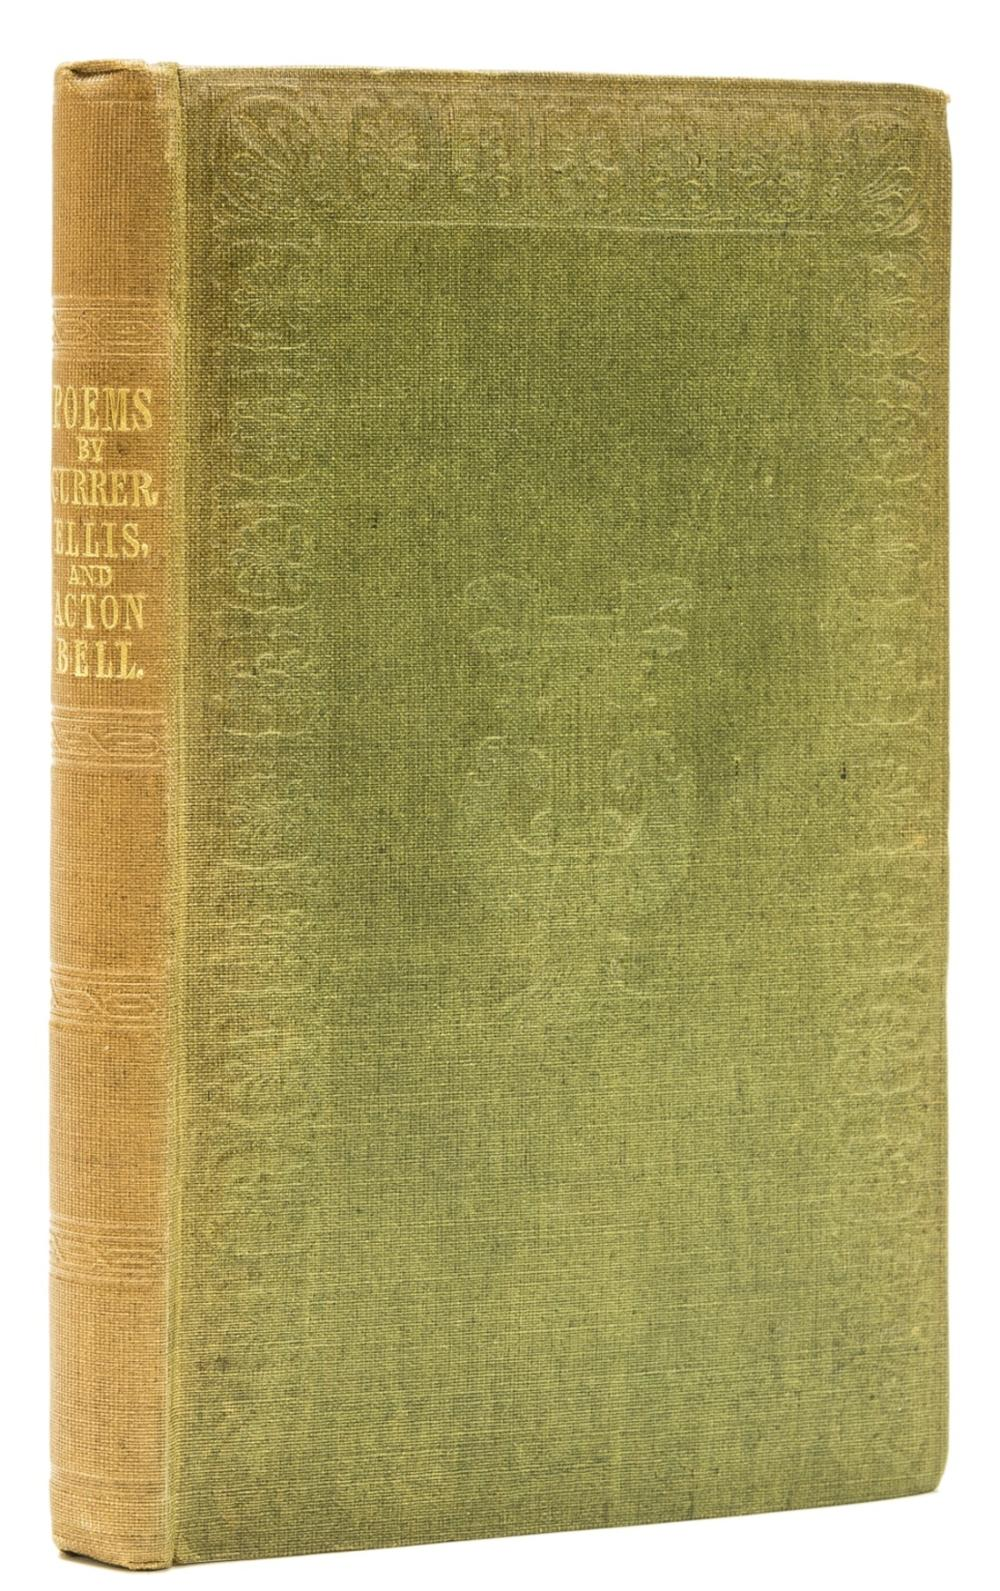 """[Brontë (Charlotte, Emily and Anne)], """"Currer, Ellis & Acton Bell"""". Poems, first edition, second issue, original green cloth, Smith, Elder and Co., 1846 [but 1848]."""